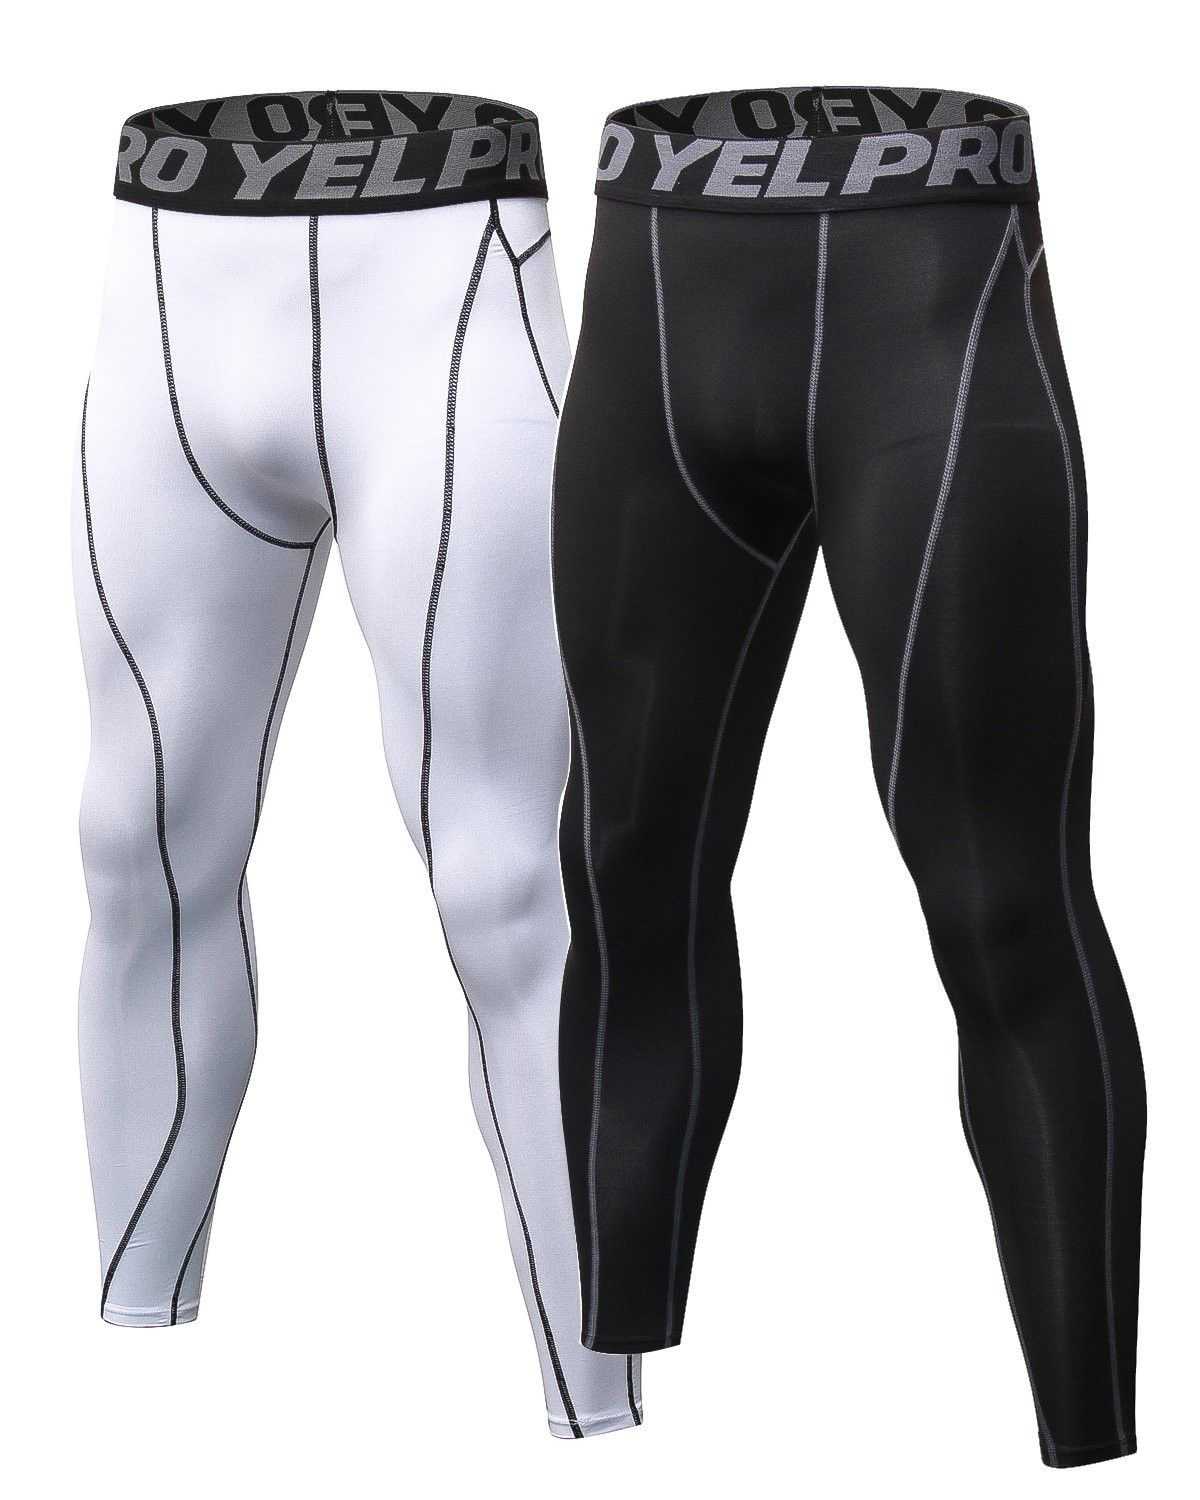 Mens compression pants 2 pack base layer sports tights